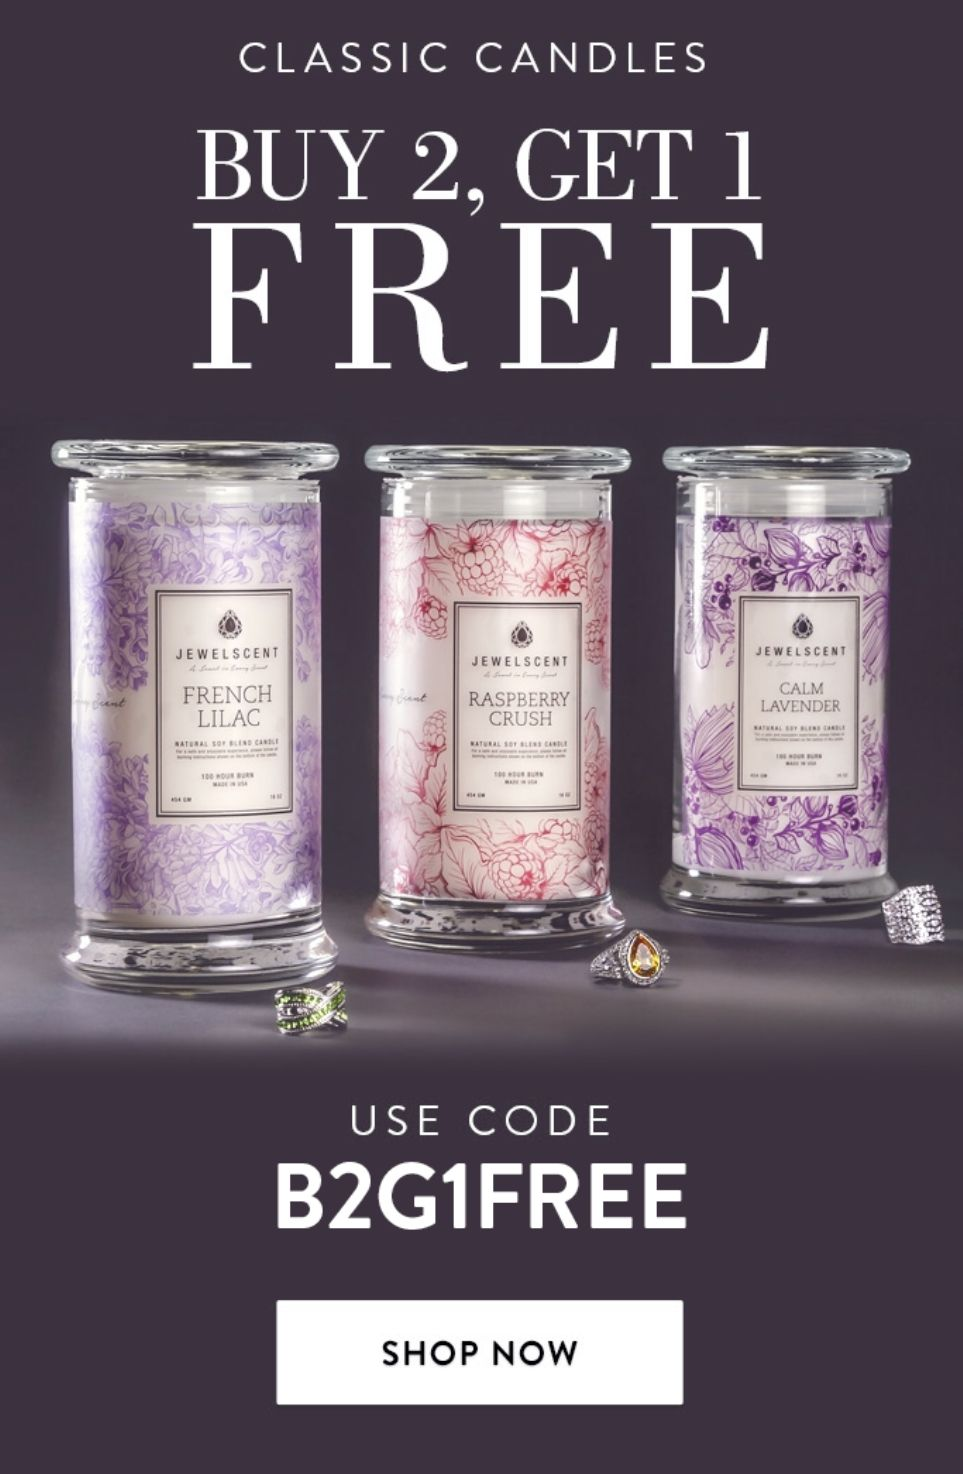 Buy 2 candles get 1 free cannot be combined with any other